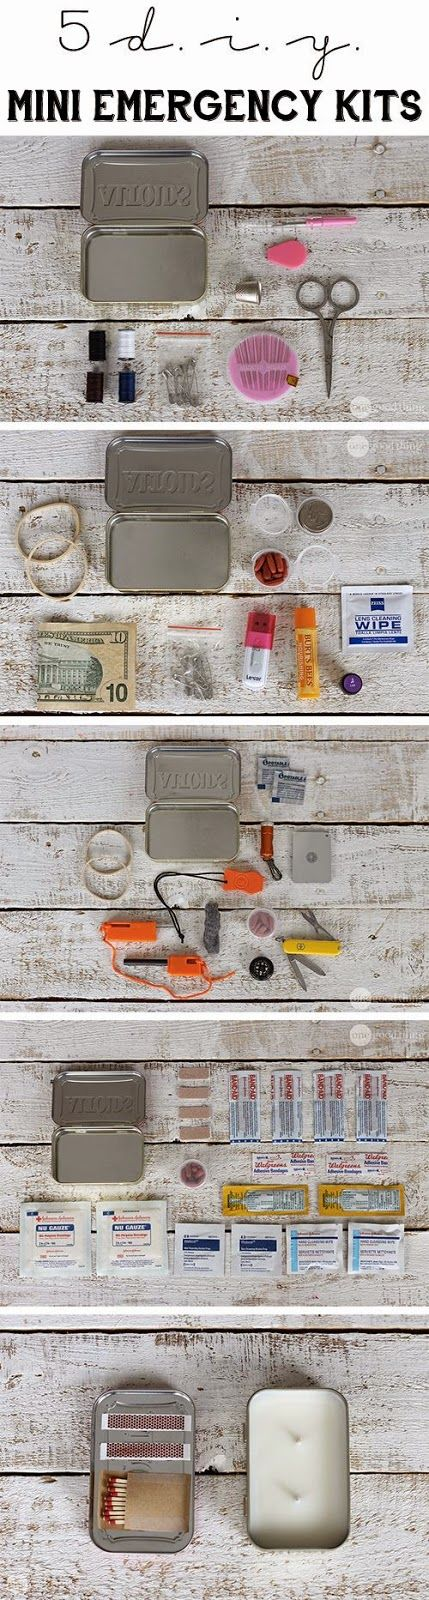 Craft Project Ideas: 5 DIY MINI EMERGENCY KITS                                                                                                                                                                                 Mehr